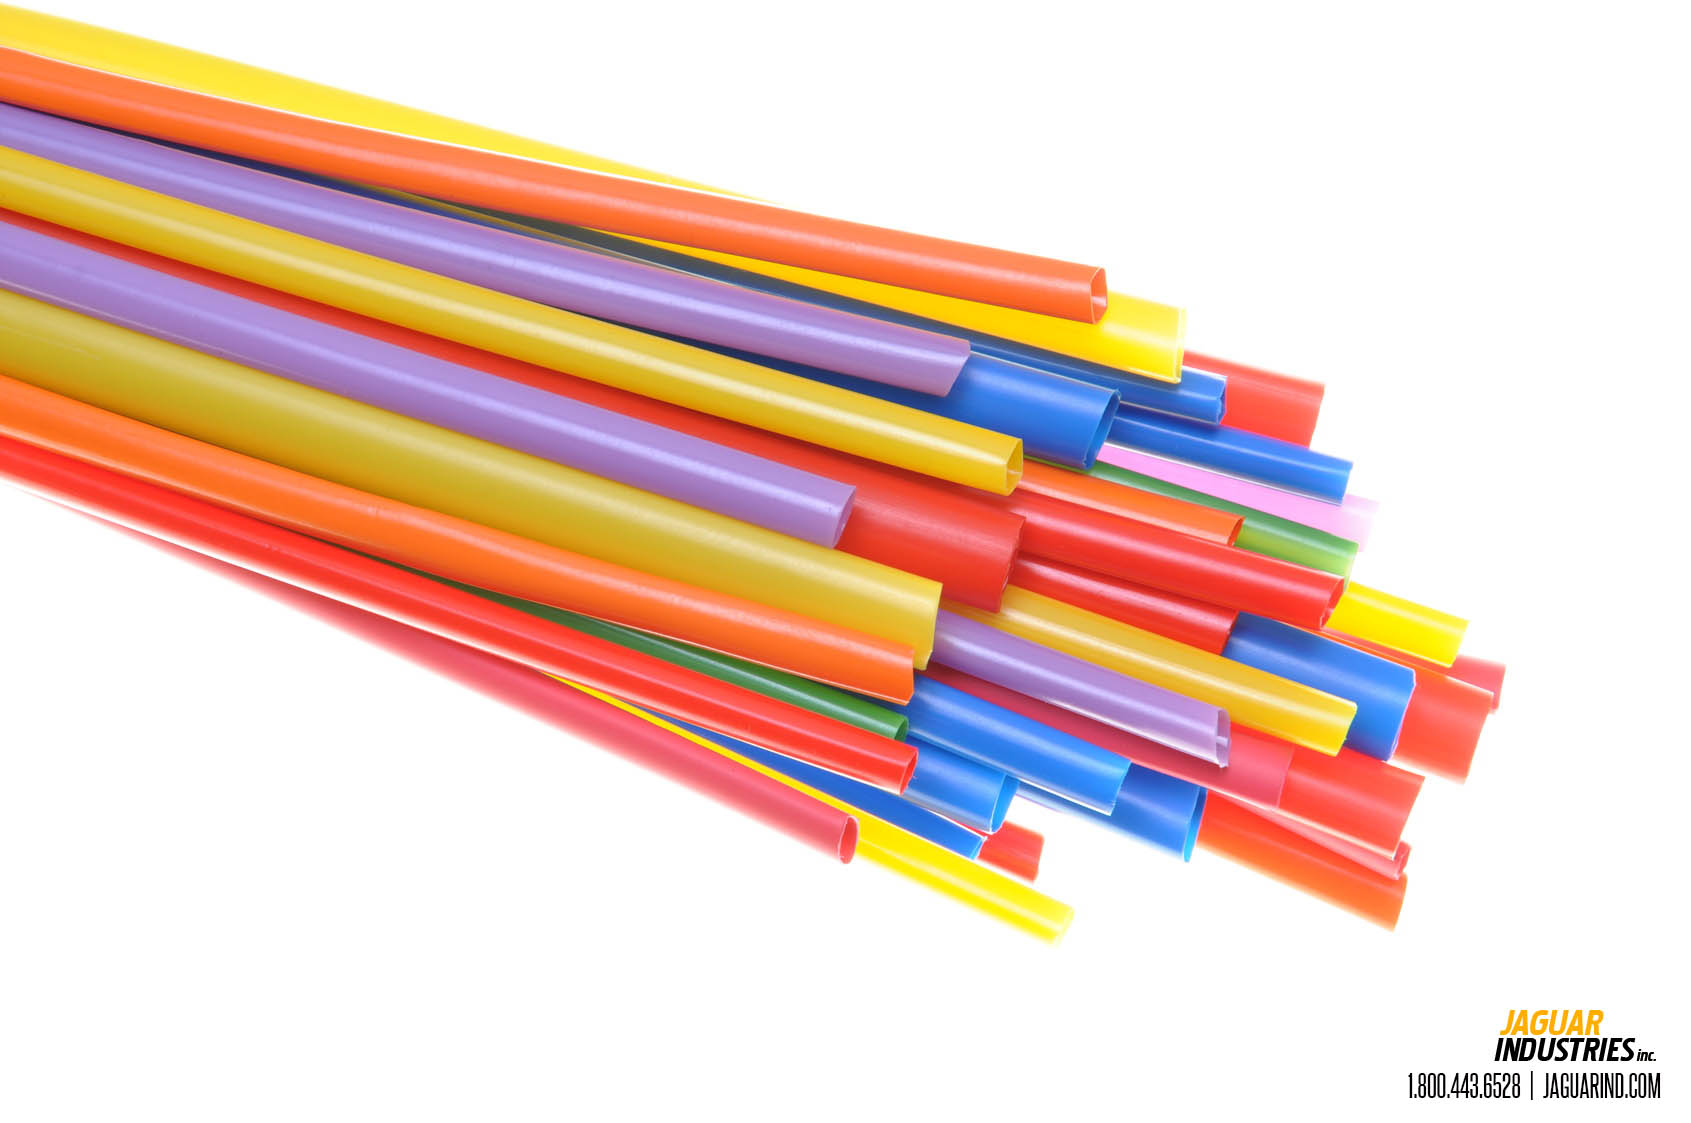 Jaguar-Industries-Tubing Heat Shrink Tubing